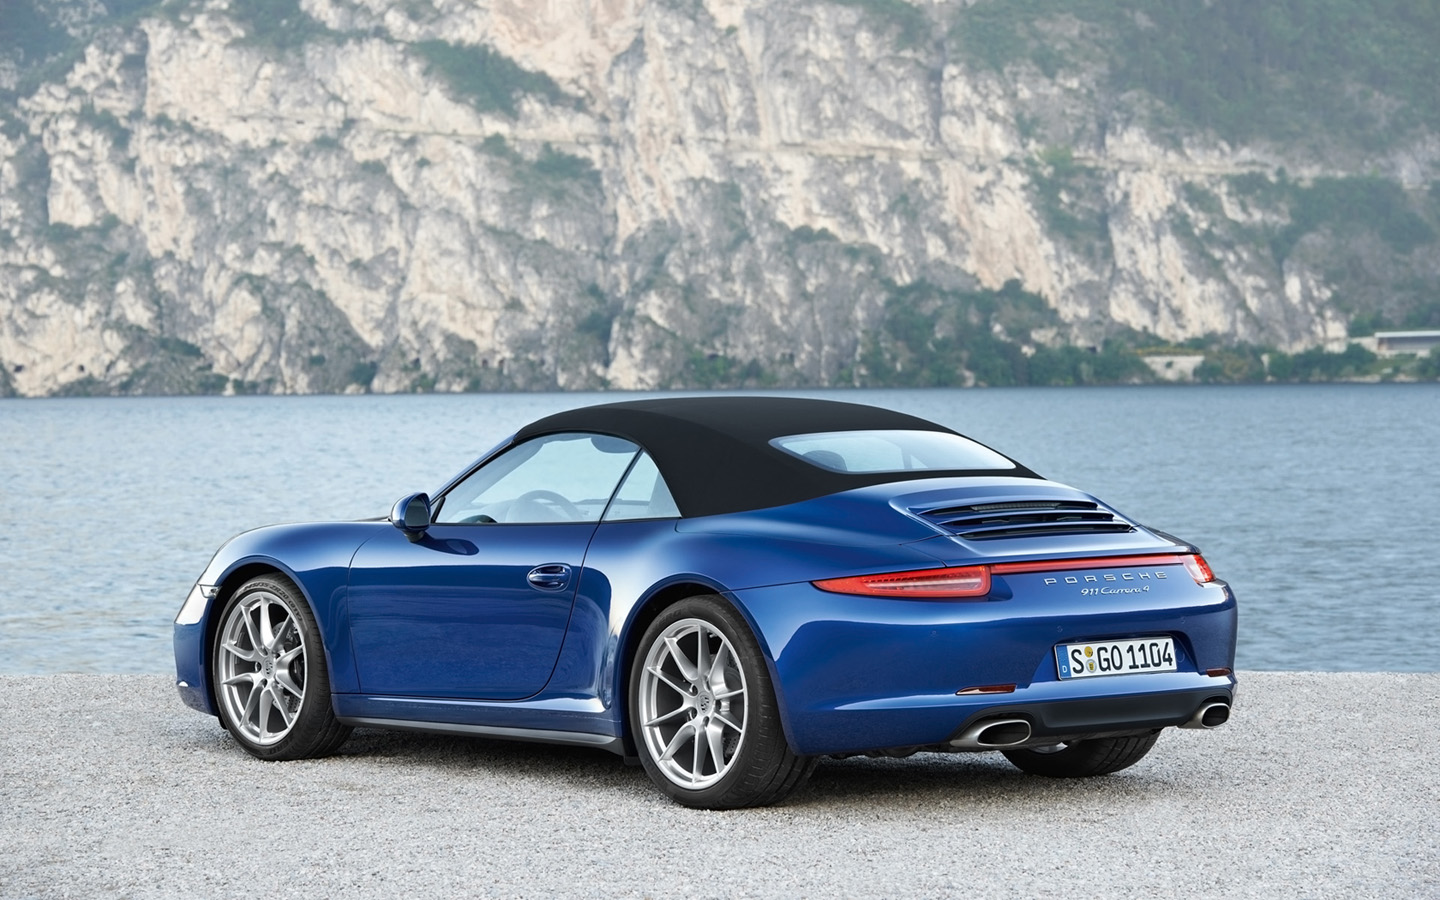 2019 Porsche 911 Carrera 4 Cabriolet photo - 3